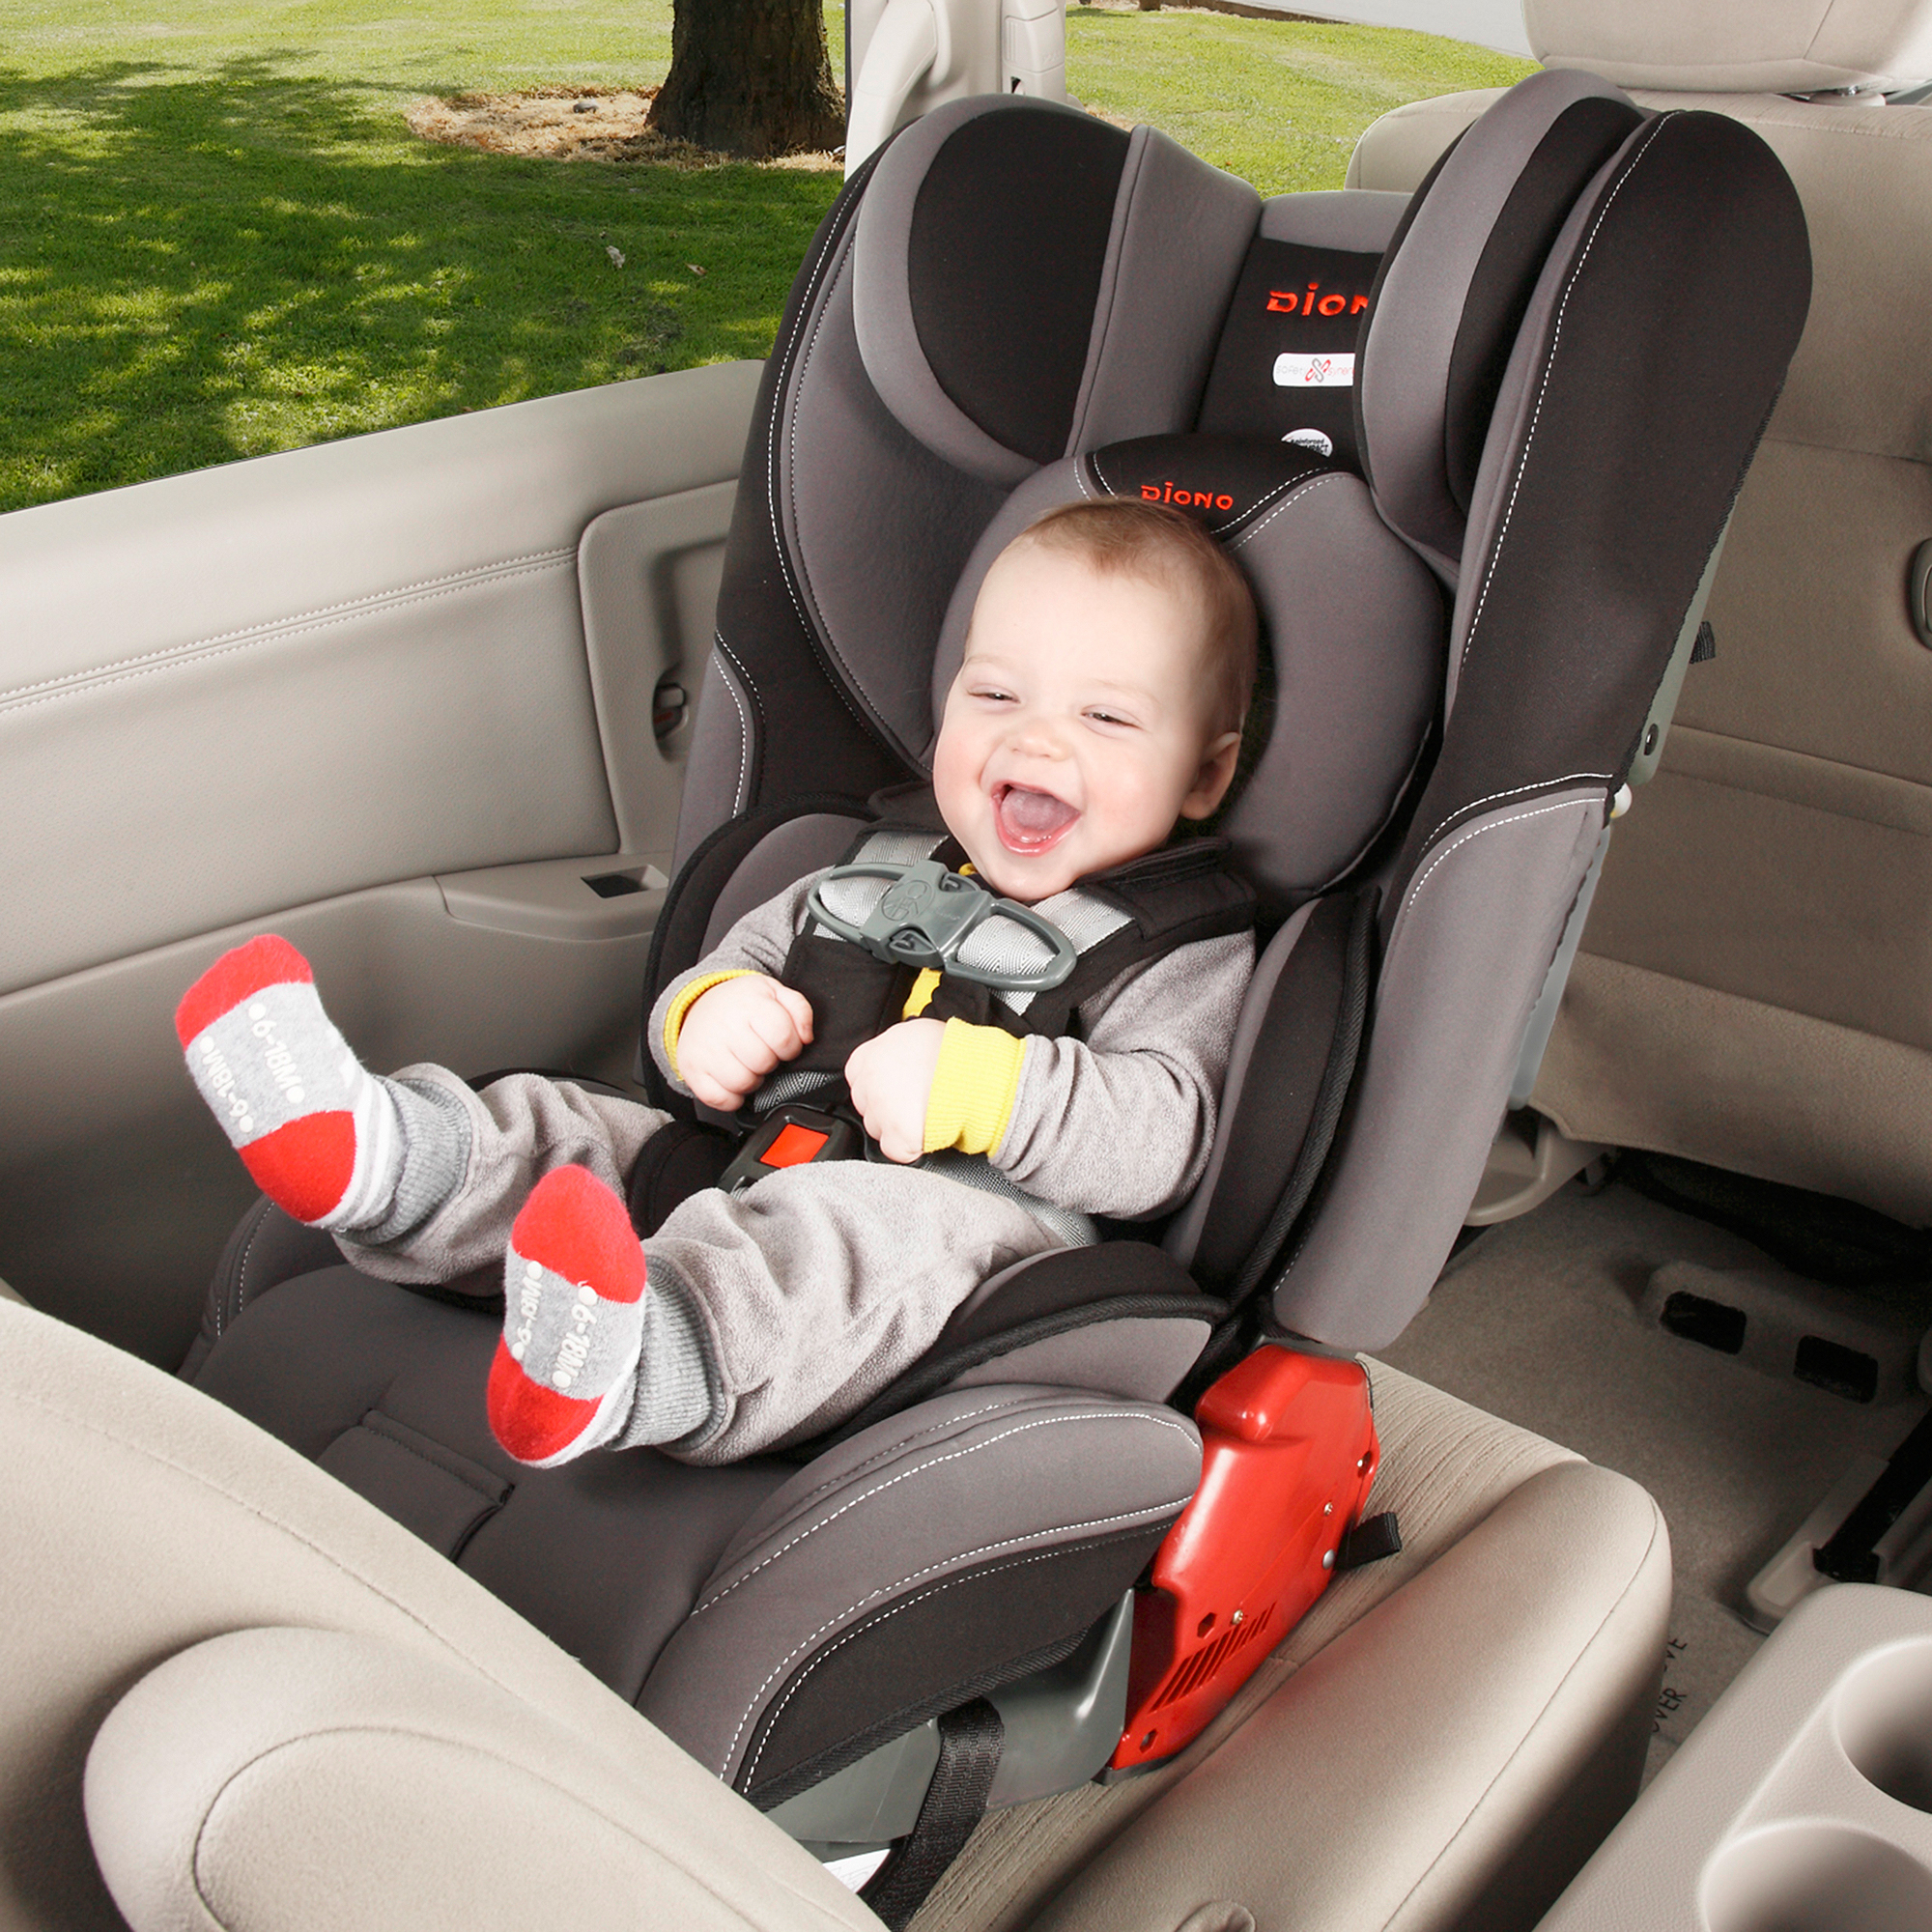 Diono Rainier Convertible Car Seat plus Booster with Adjustable Head